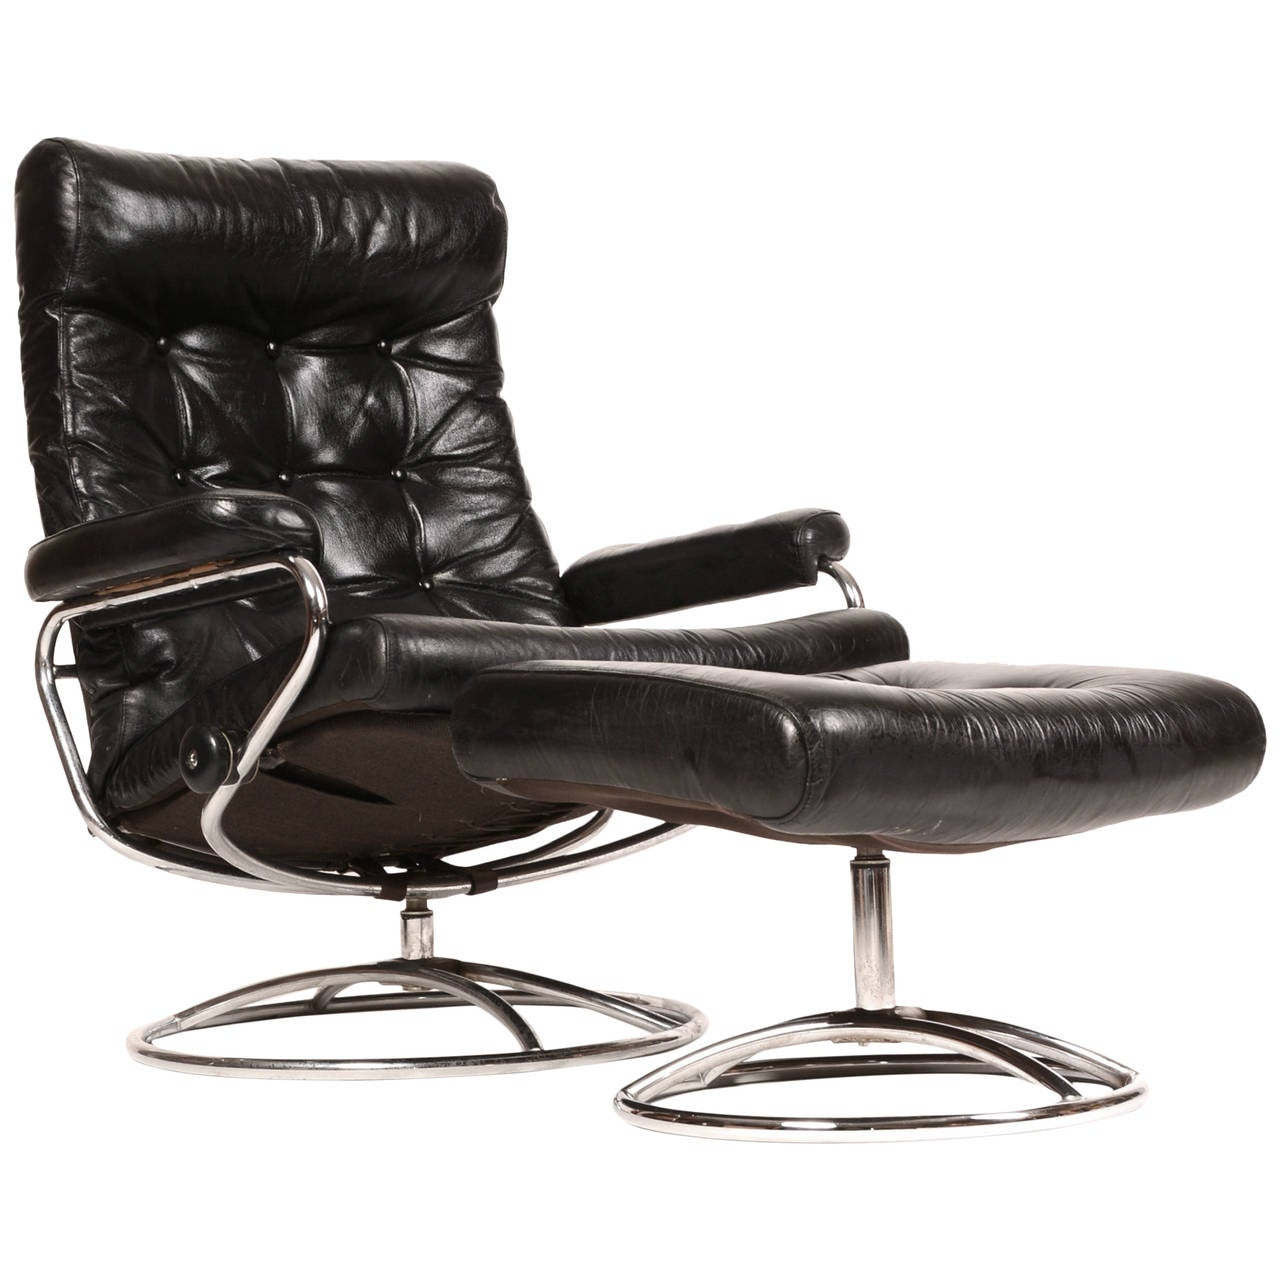 reclining stressless lounge chair and ottoman by ekornes. Black Bedroom Furniture Sets. Home Design Ideas